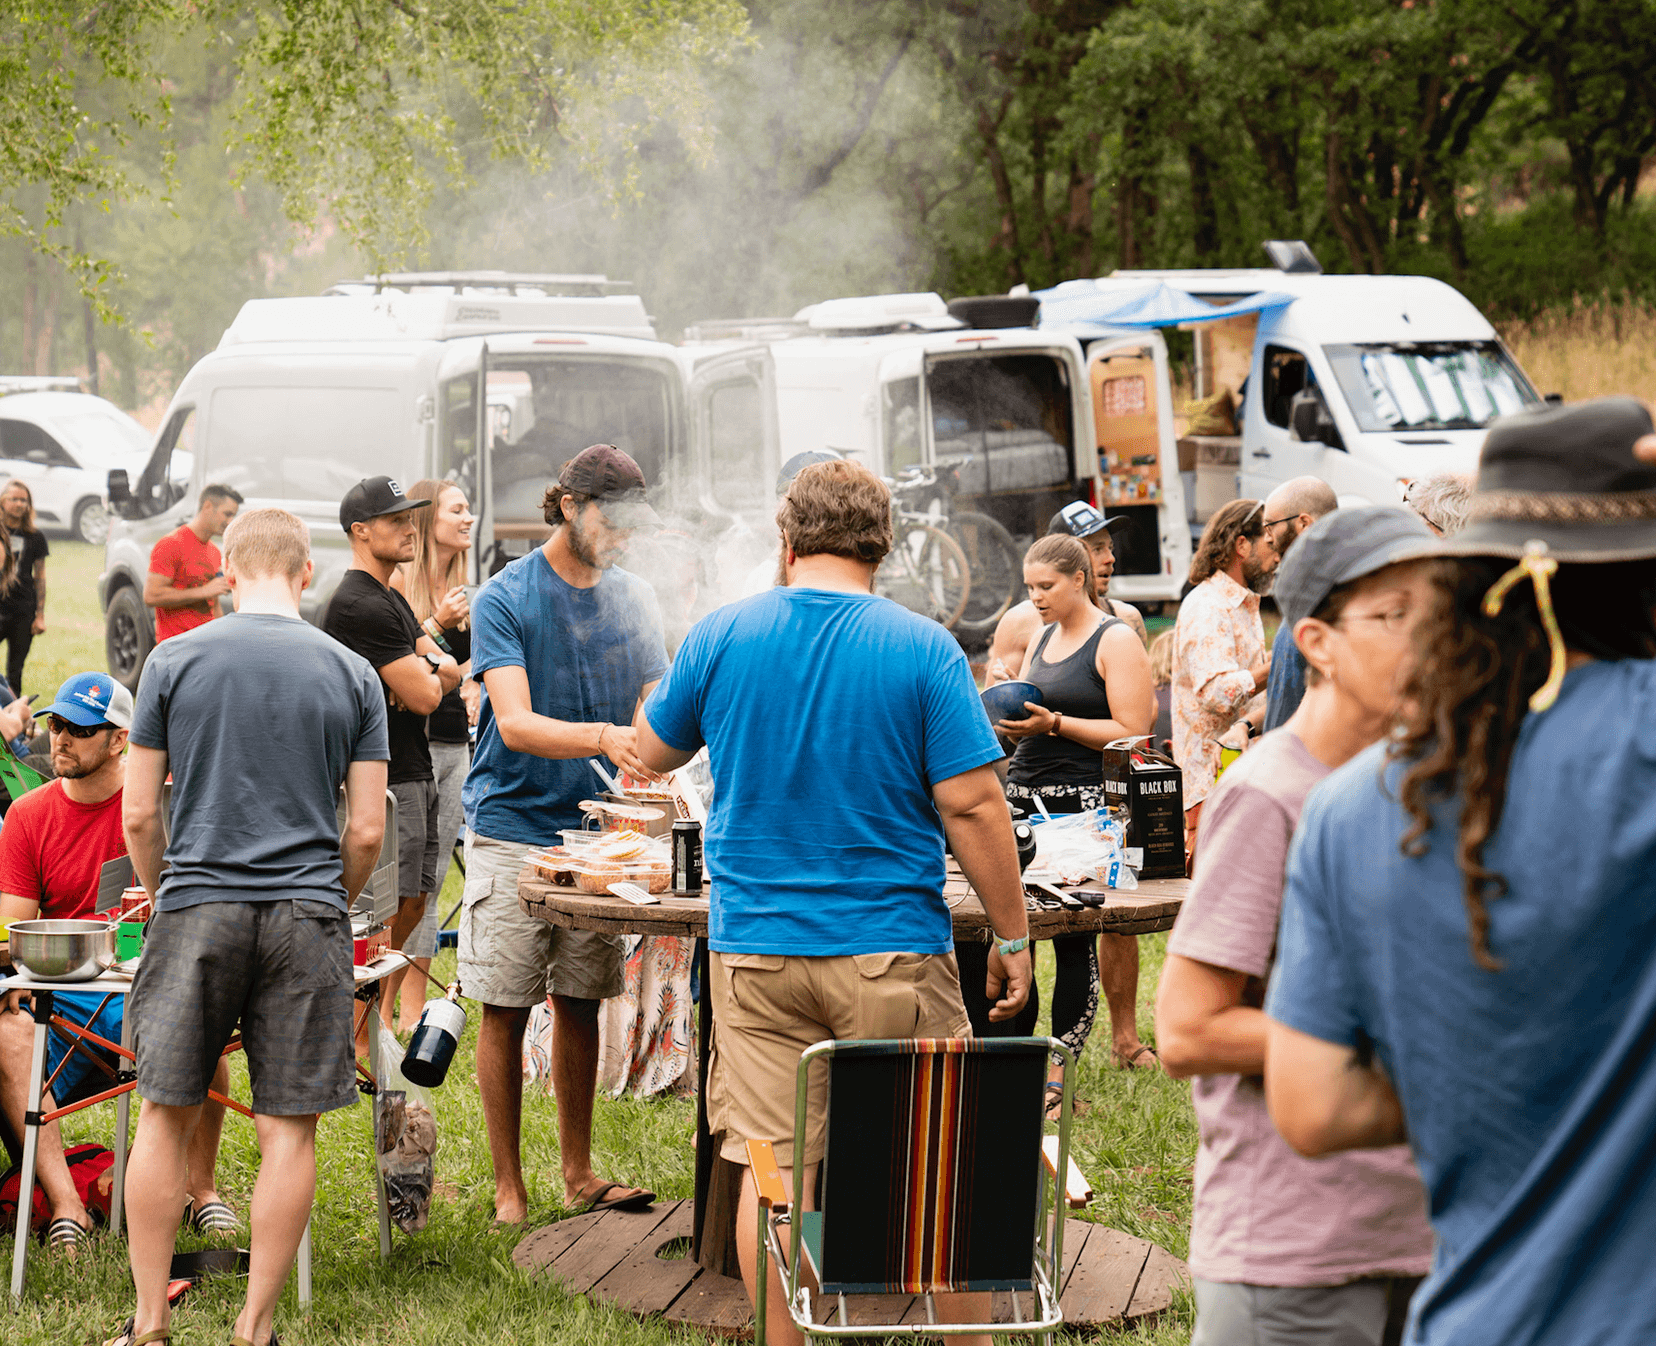 people eating barbecue at camper van event potluck